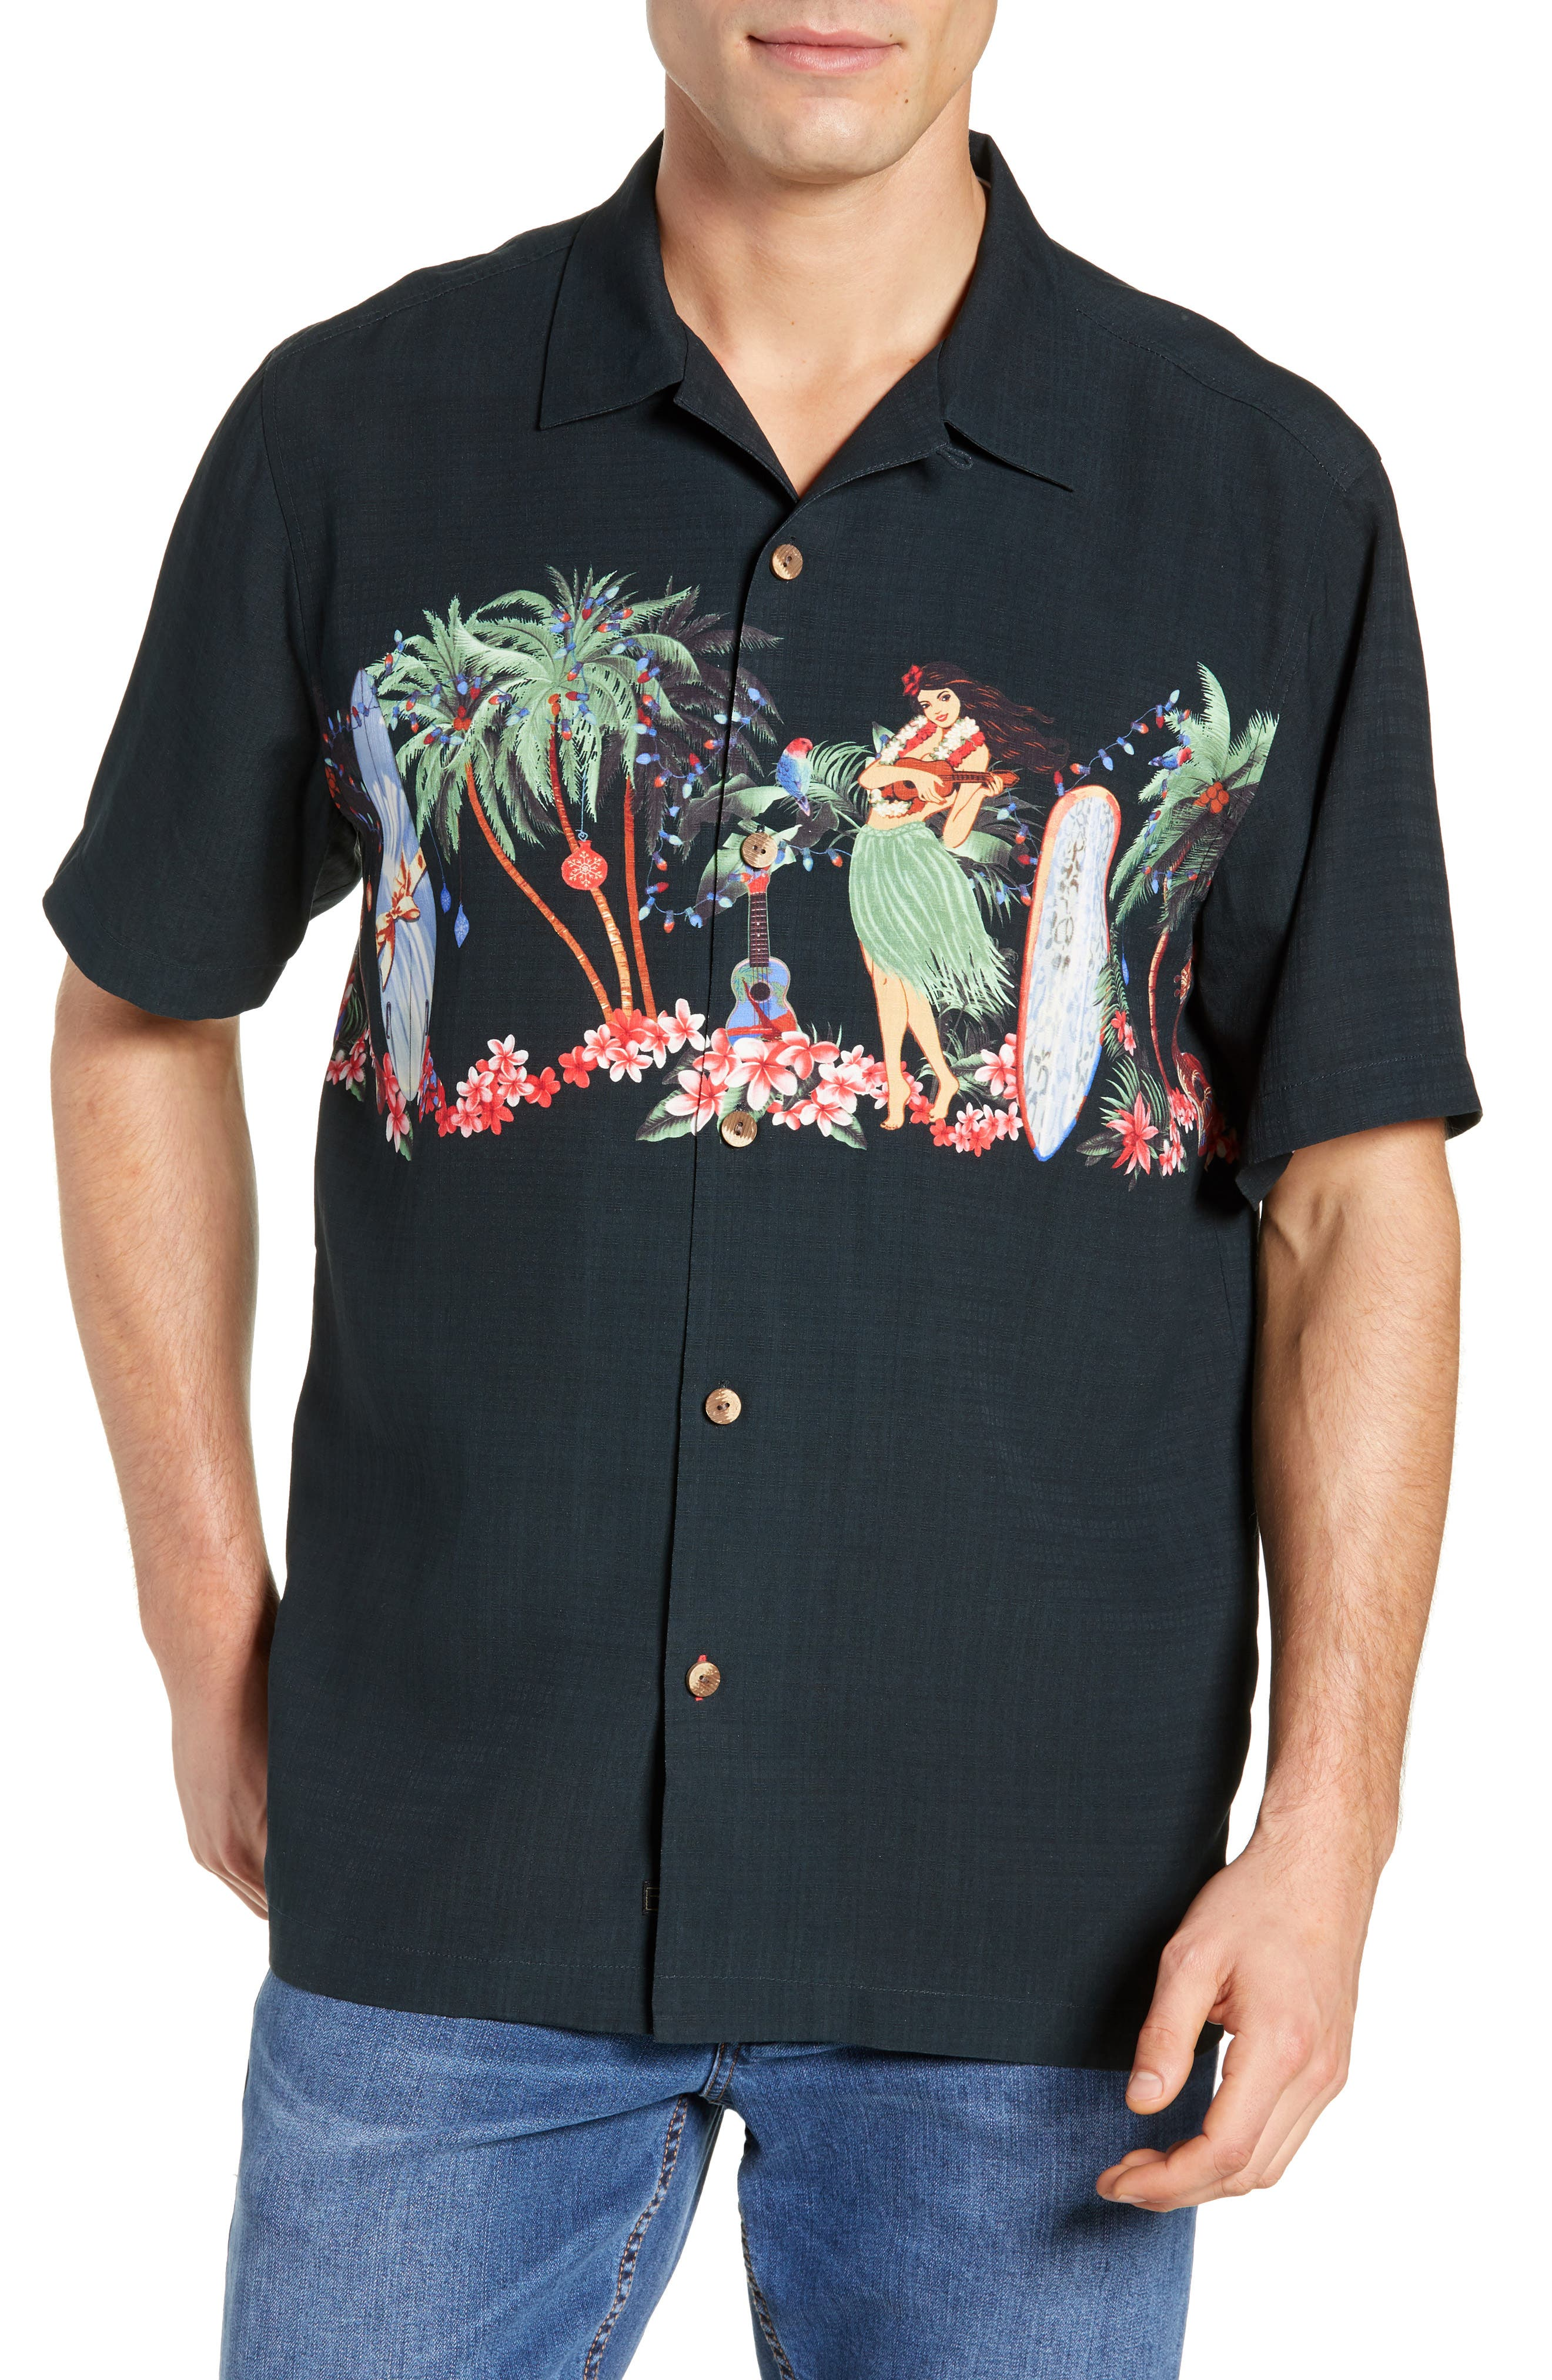 TOMMY BAHAMA, Mele Kalikimaka Silk Camp Shirt, Main thumbnail 1, color, 001